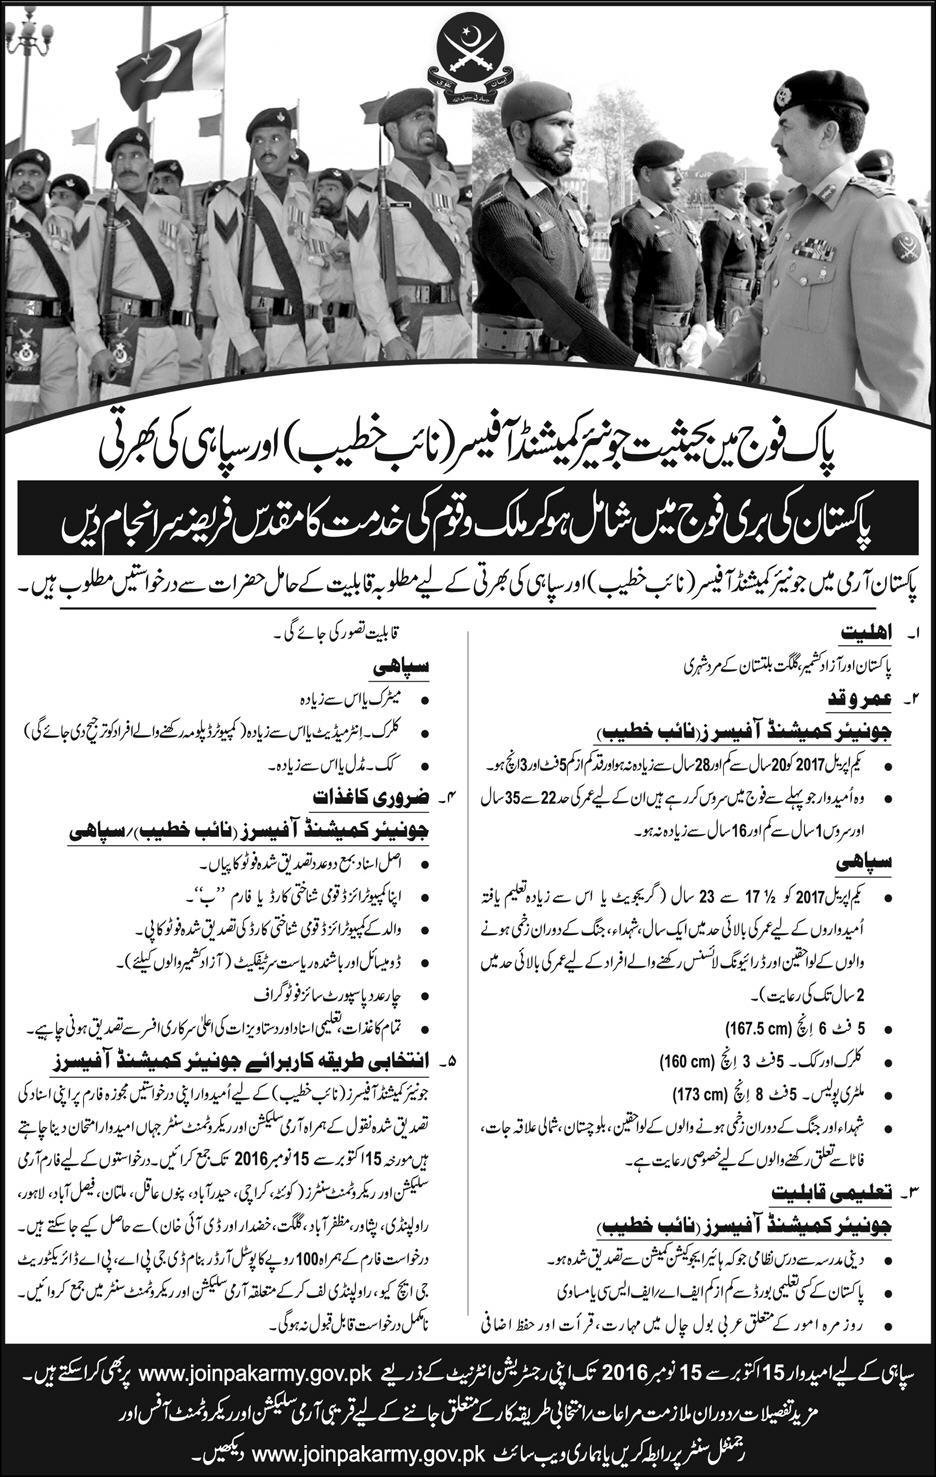 Join Pak Army As Junior Commissioned Officer And Soldier 2016 Online Registration